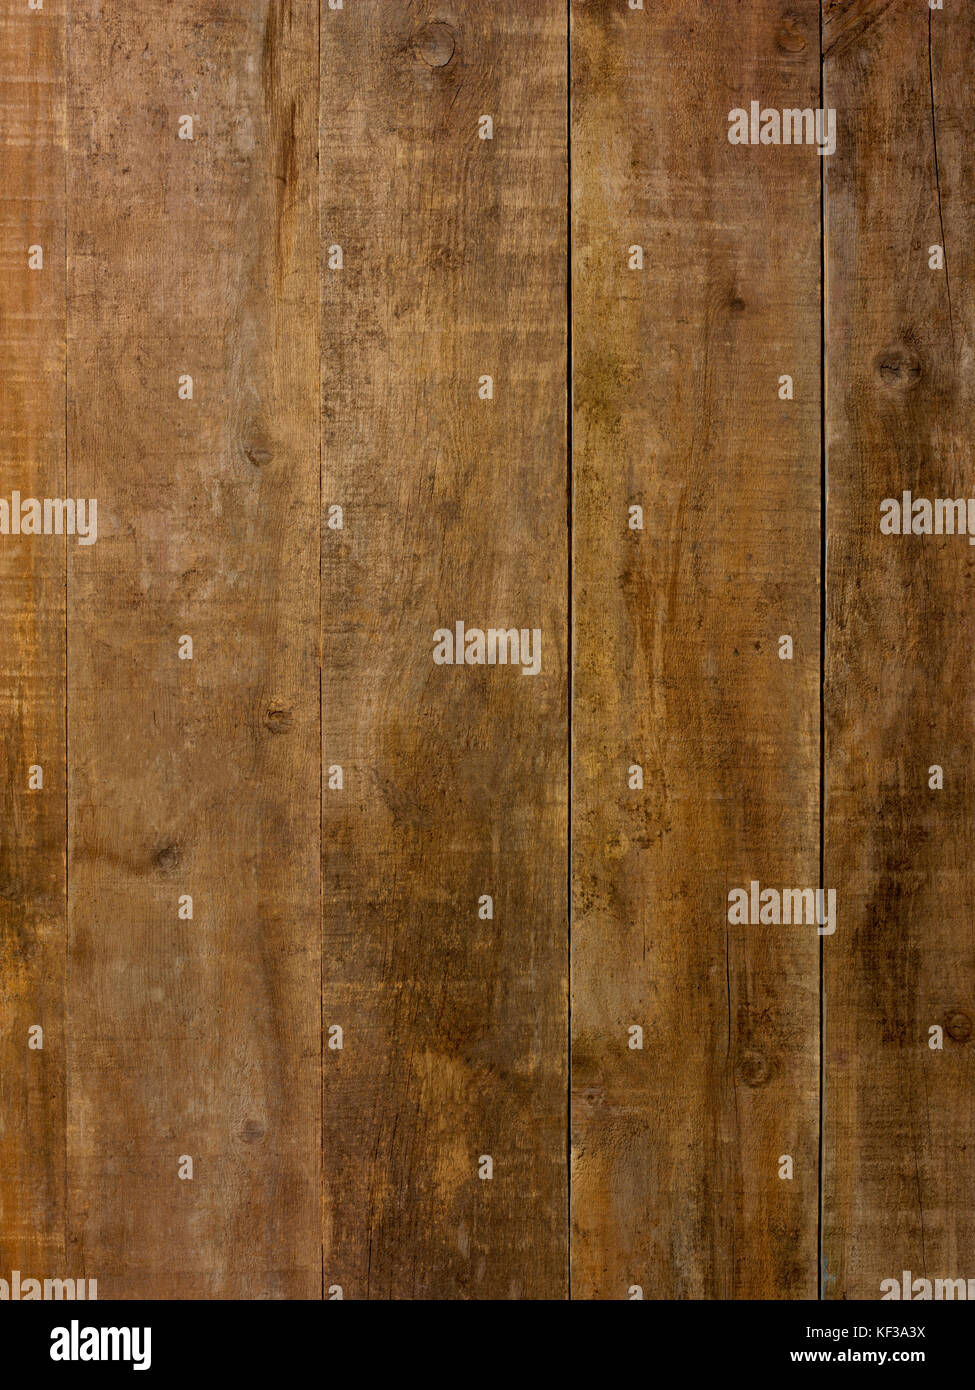 Rough brown wood plank  foor or wall background - Stock Image